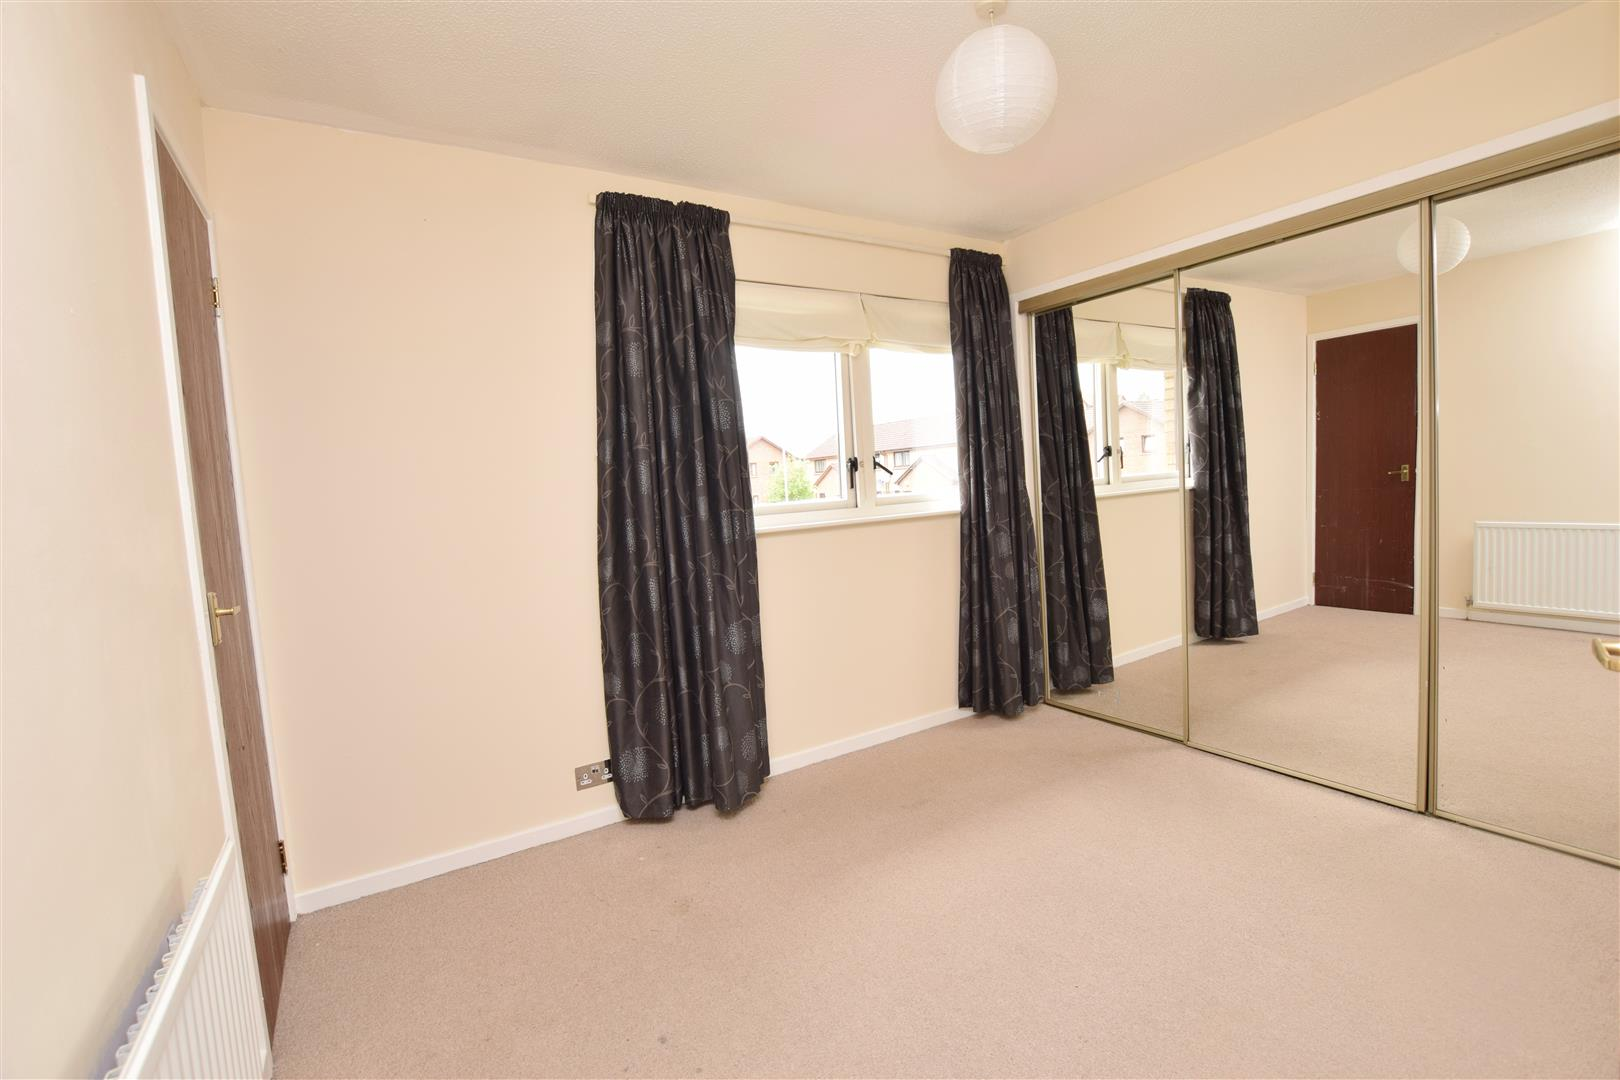 91, Duncansby Way, Perth, Perthshire, PH1 5XF, UK